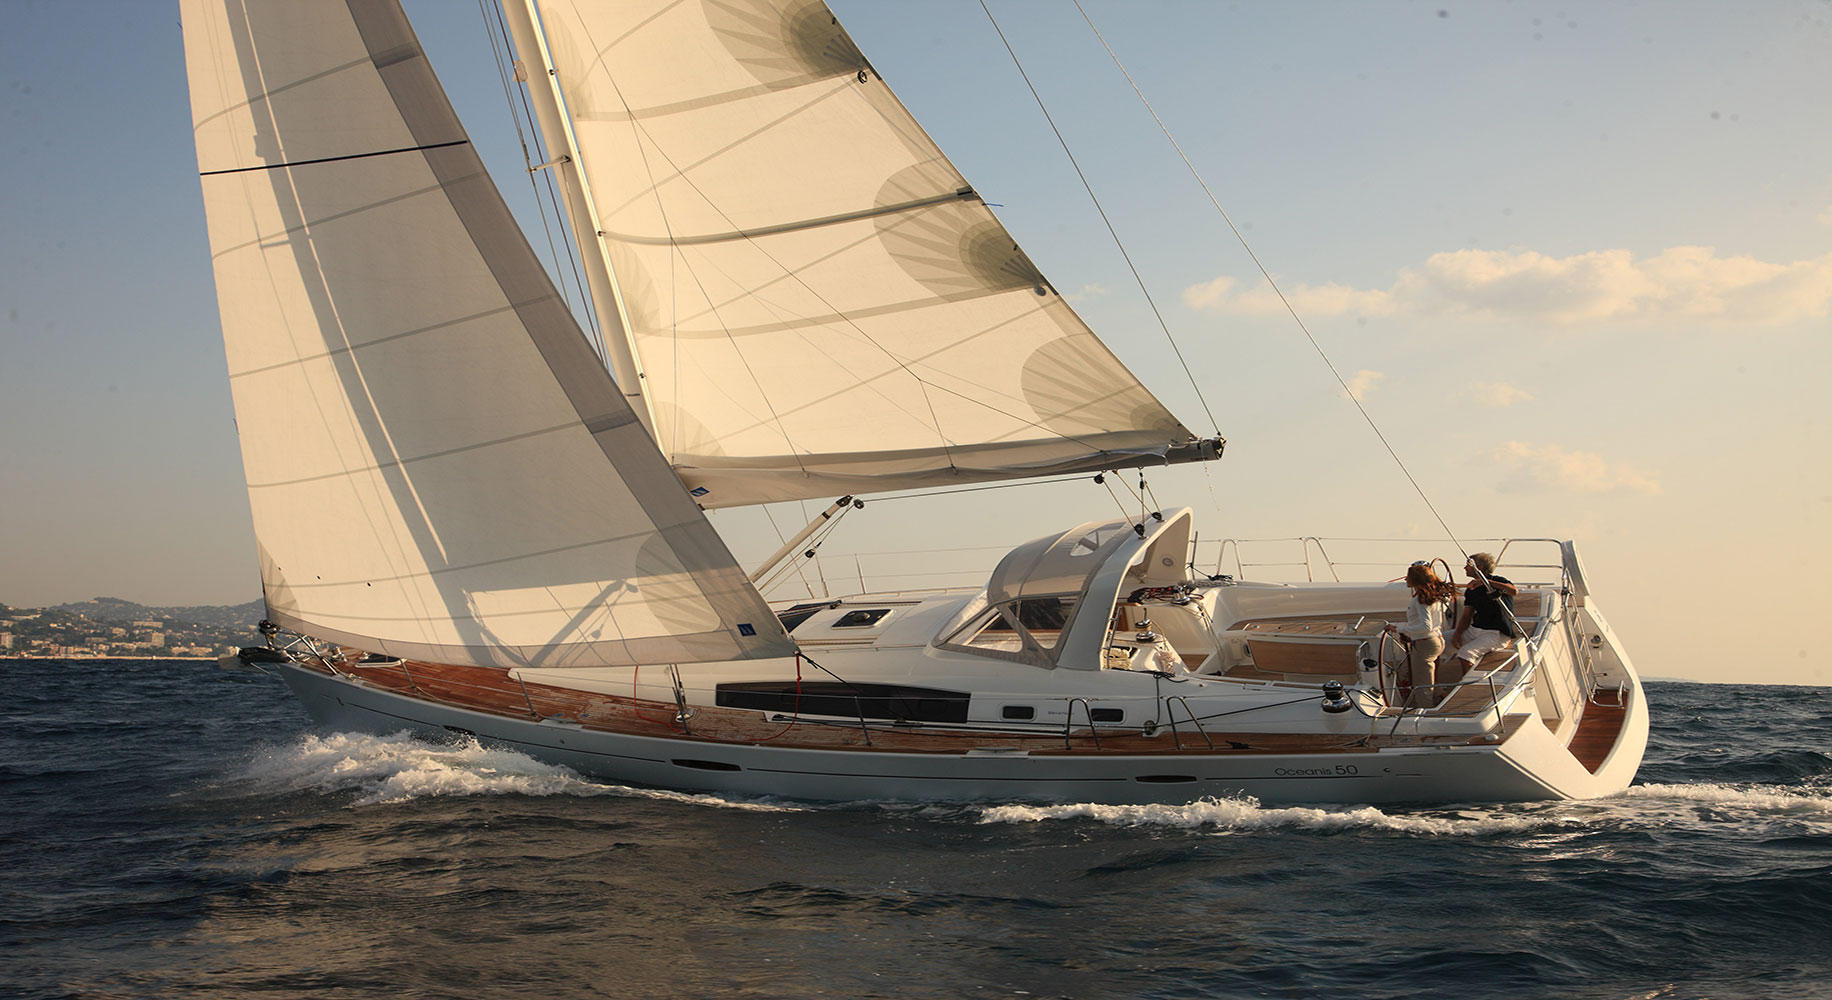 Beneteau Oceanis 50 Sailboat for sale